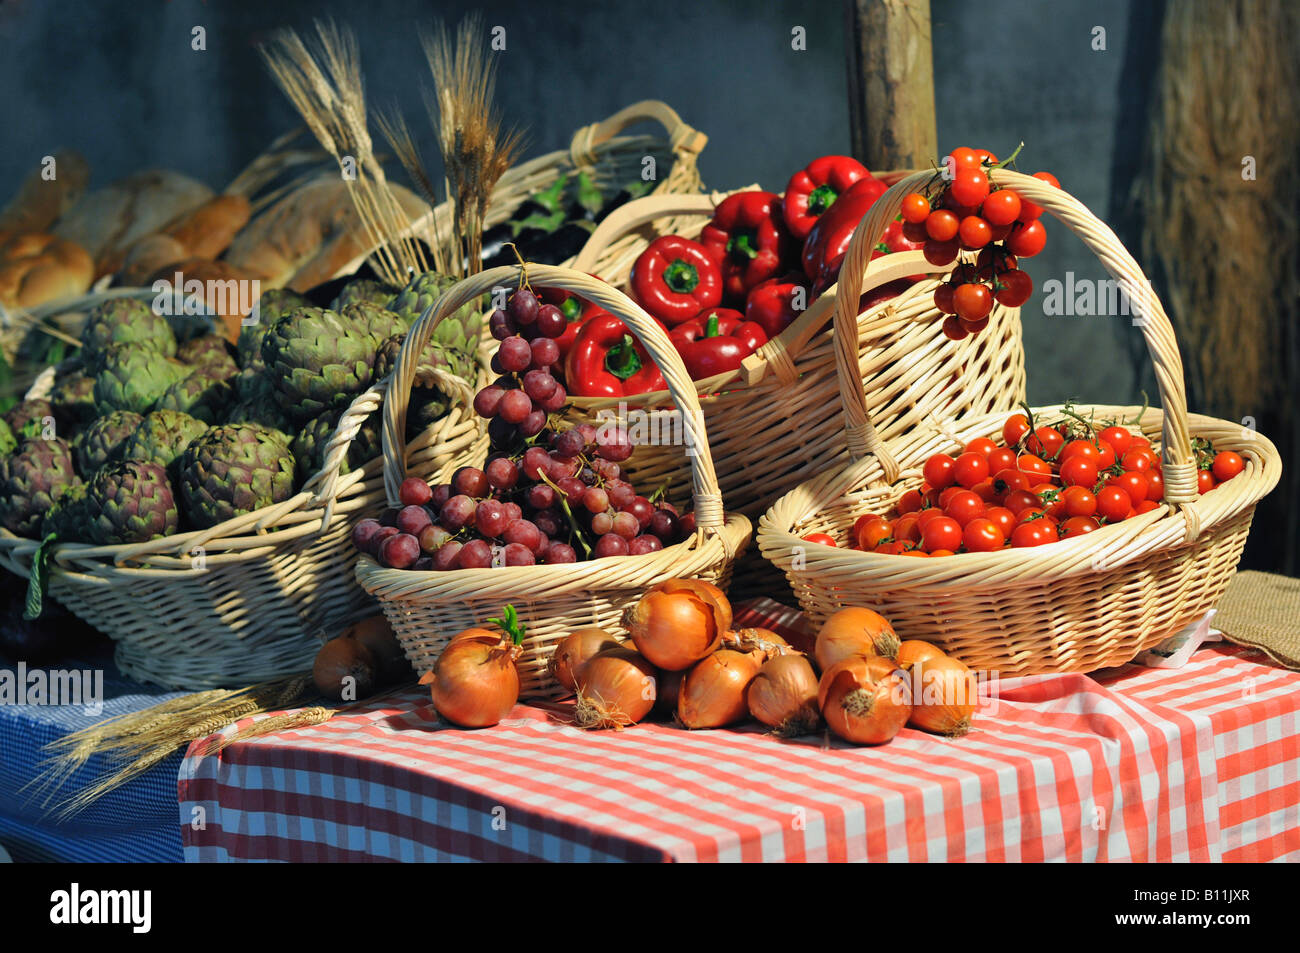 Typical Italian agricultural produce - Stock Image